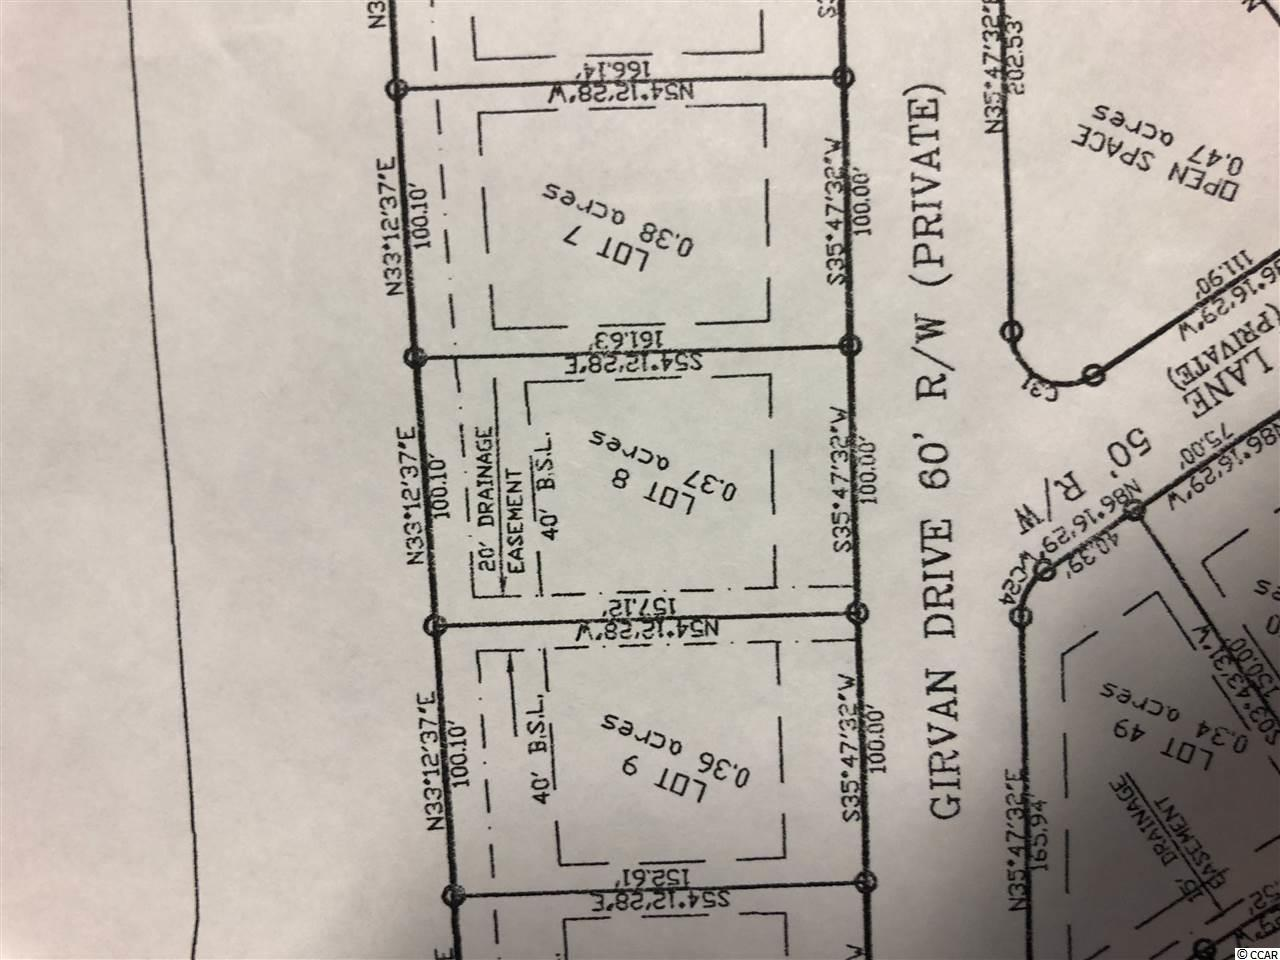 100ft wide lot on the golf course to build your dream home - very few of these  vacant home sites remain on the entire Grand Strand!  Home site has golf course and woods to the rear and is located on very quiet street with little traffic.  Get away from the cookie cutter communities and enjoy the spacious neighborhood of a Custom Built Community!  Amenities include a private clubhouse with pool, tennis courts, work out room, bocce court, party room with kitchen - 54 holes of golf with a top 100 public course - restaurant - famous alias pub - driving range - walking trail - security - Over 1300 acres - Come Live the Legendary Lifestyle!